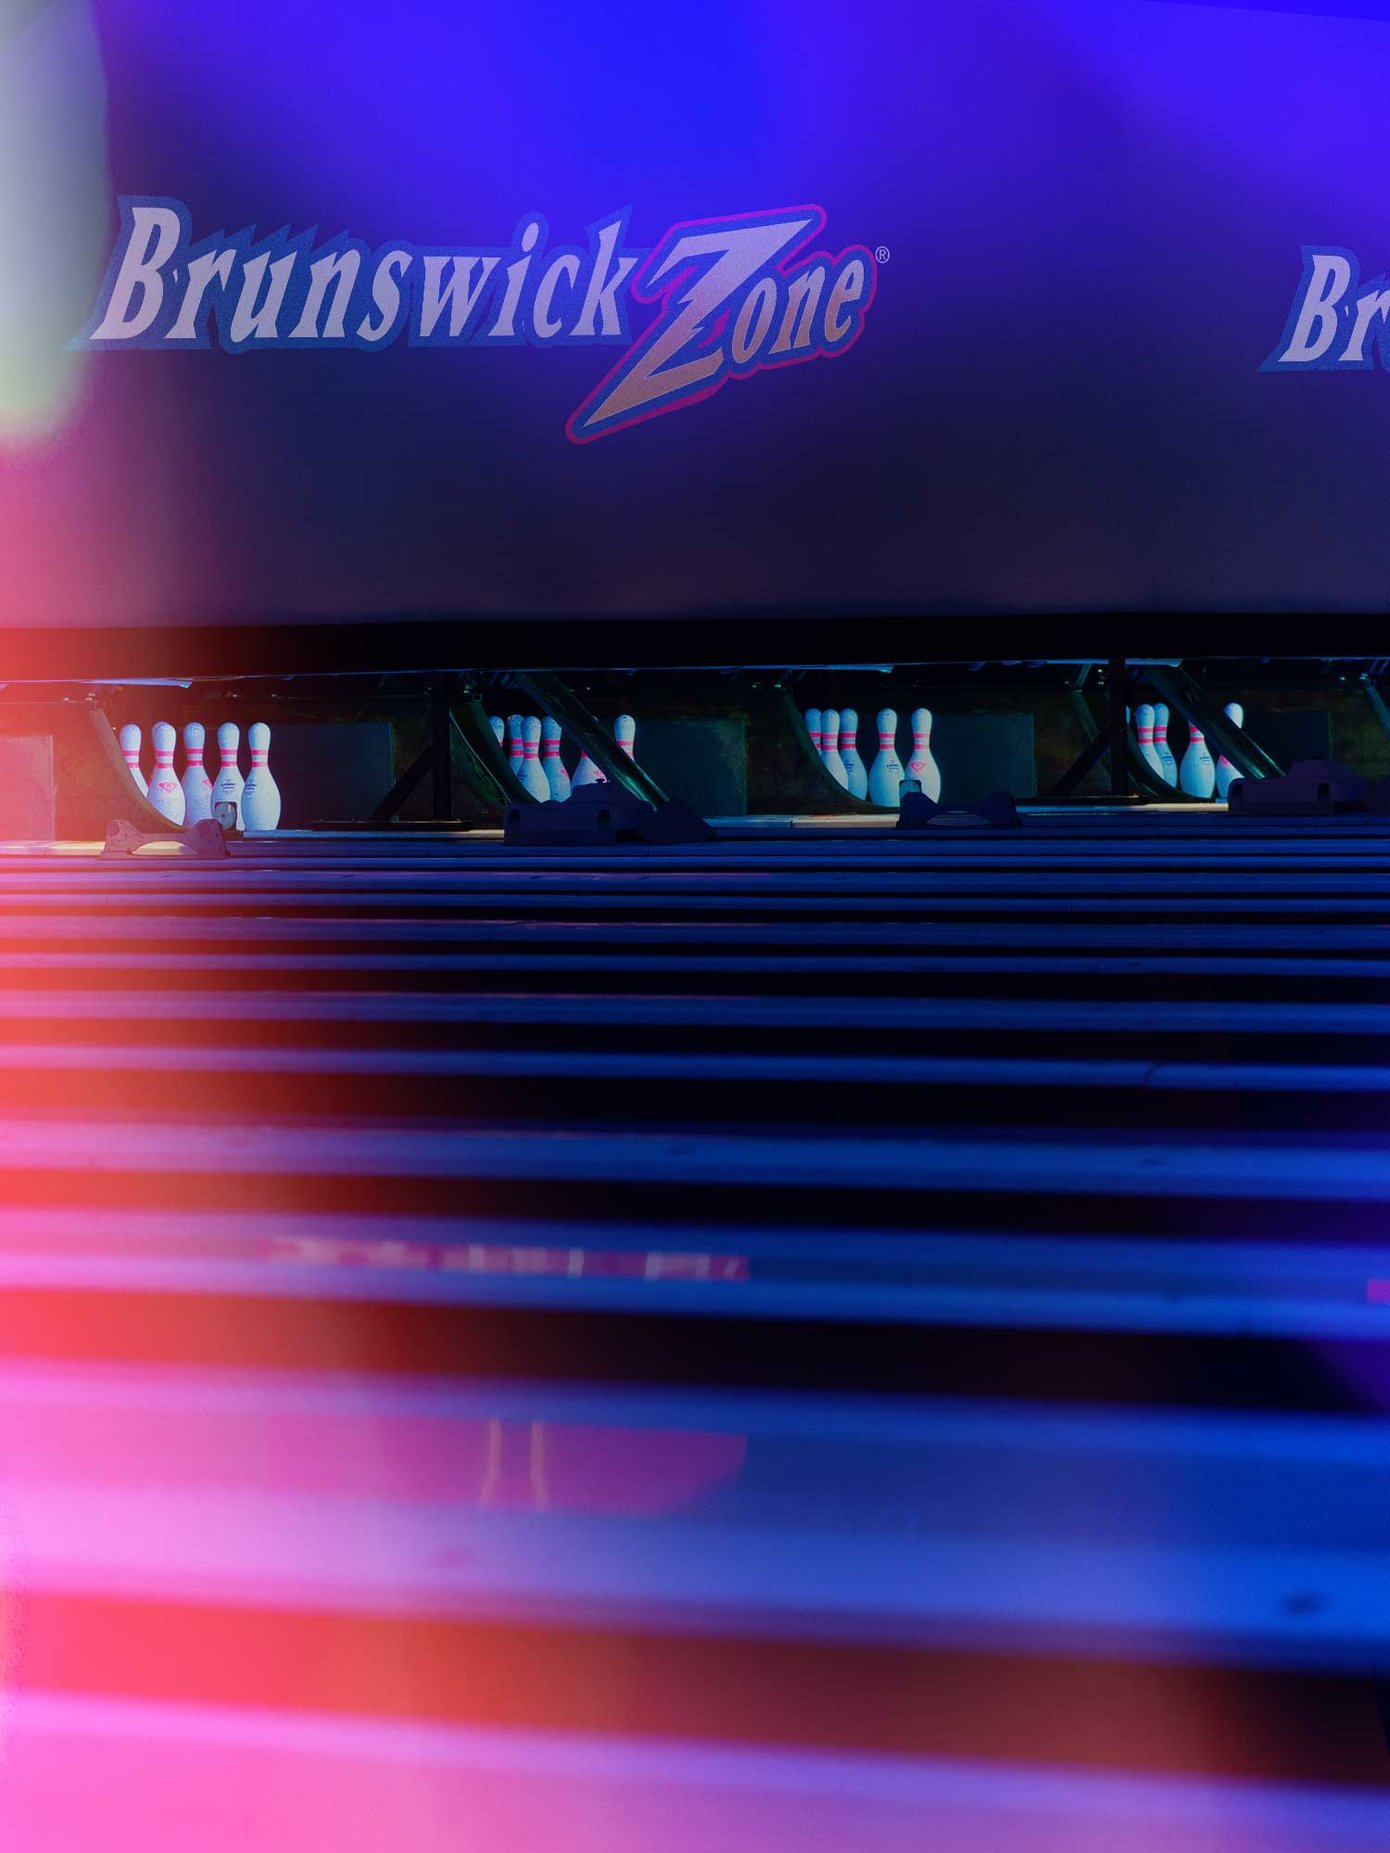 Brunswick Zone Classic Lanes is Becoming Bowlero Norco